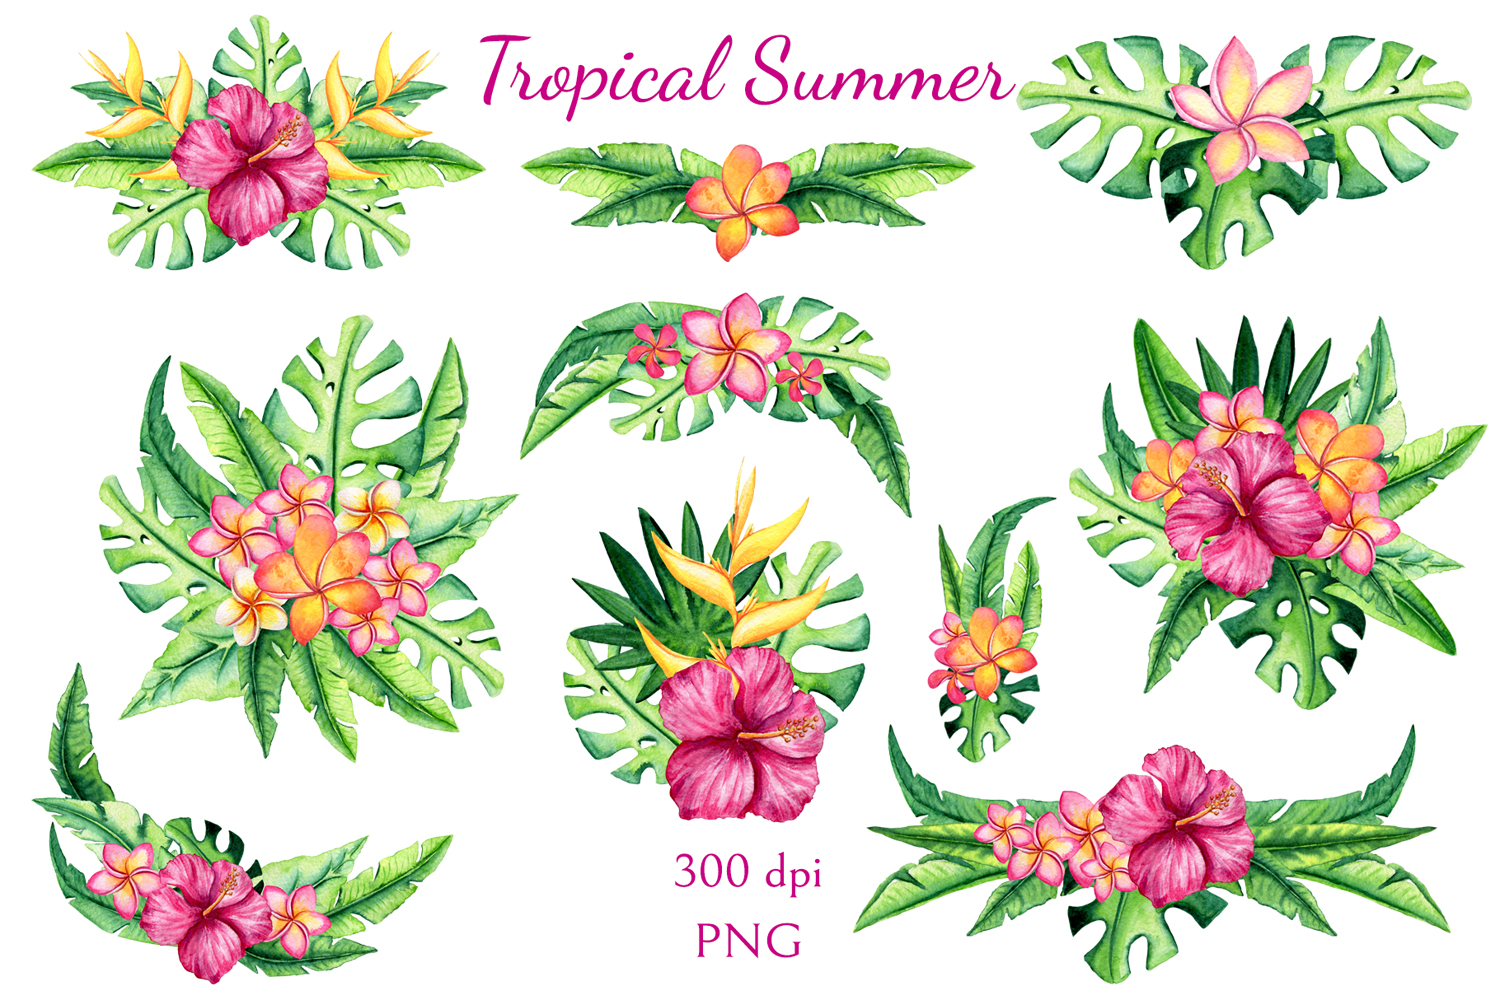 Tropical Summer example image 4